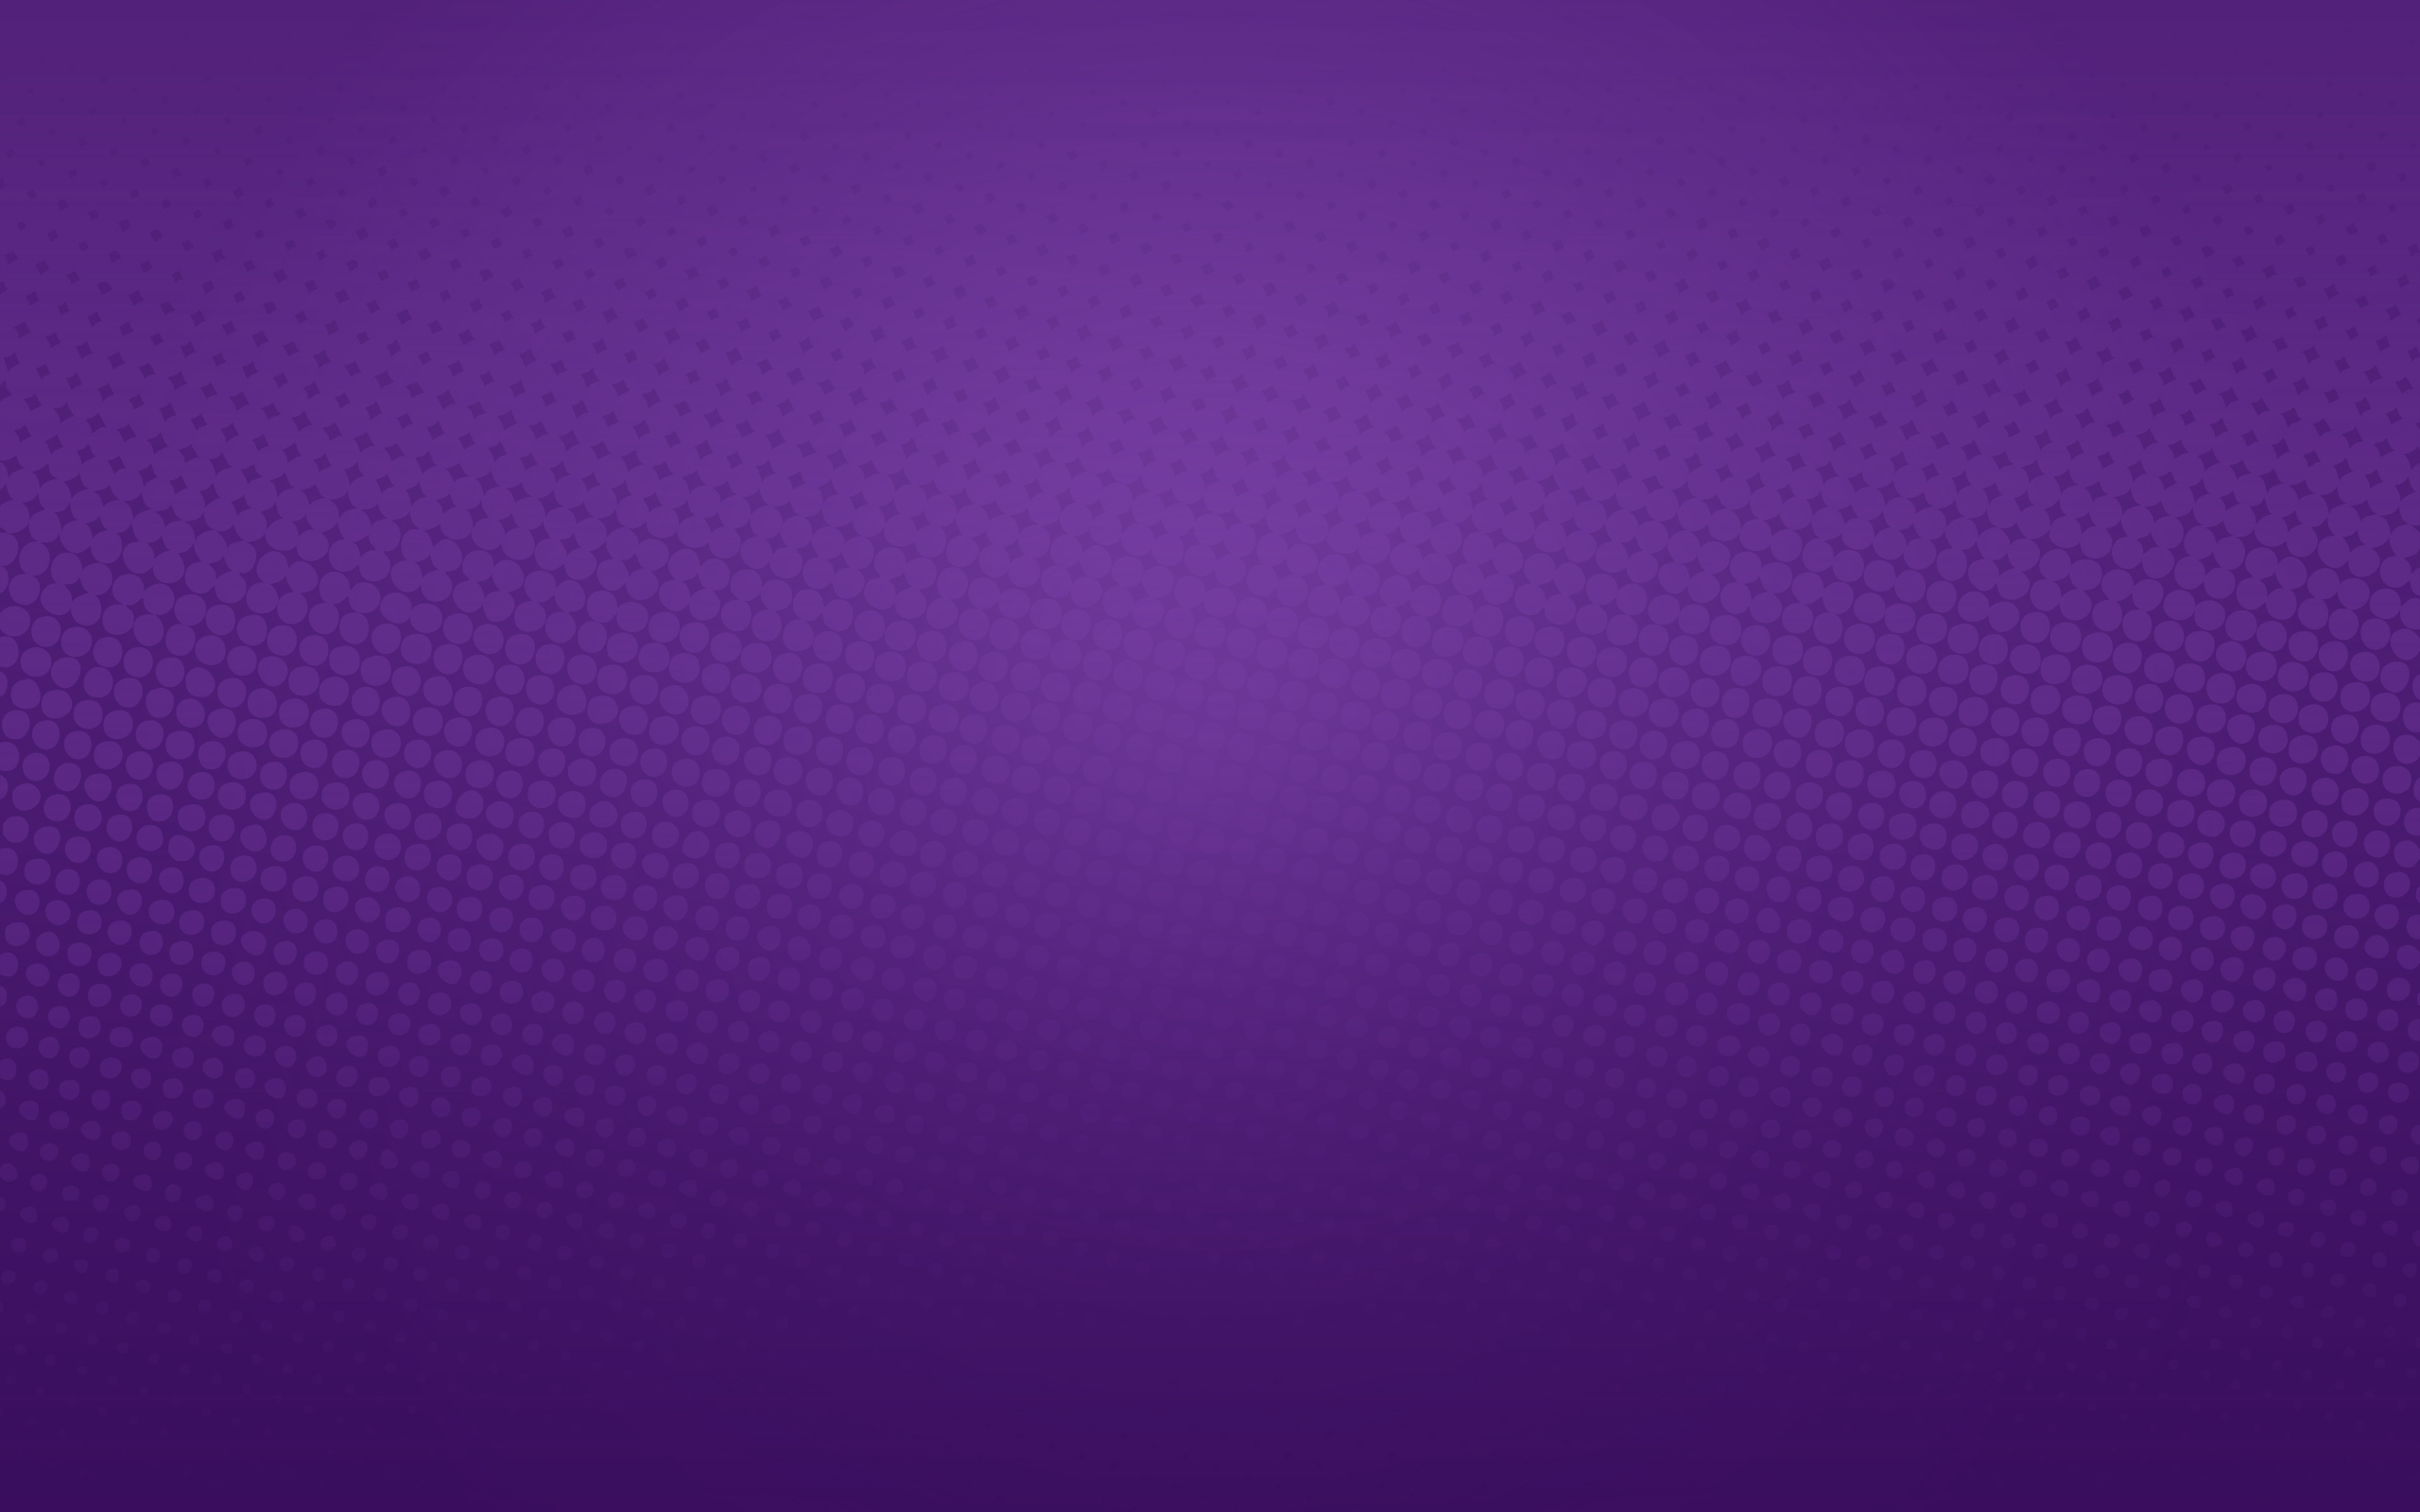 Purple & Black Bedroom Ideas Part - 17: HD Purple Wallpaper Image To Use As Background-11